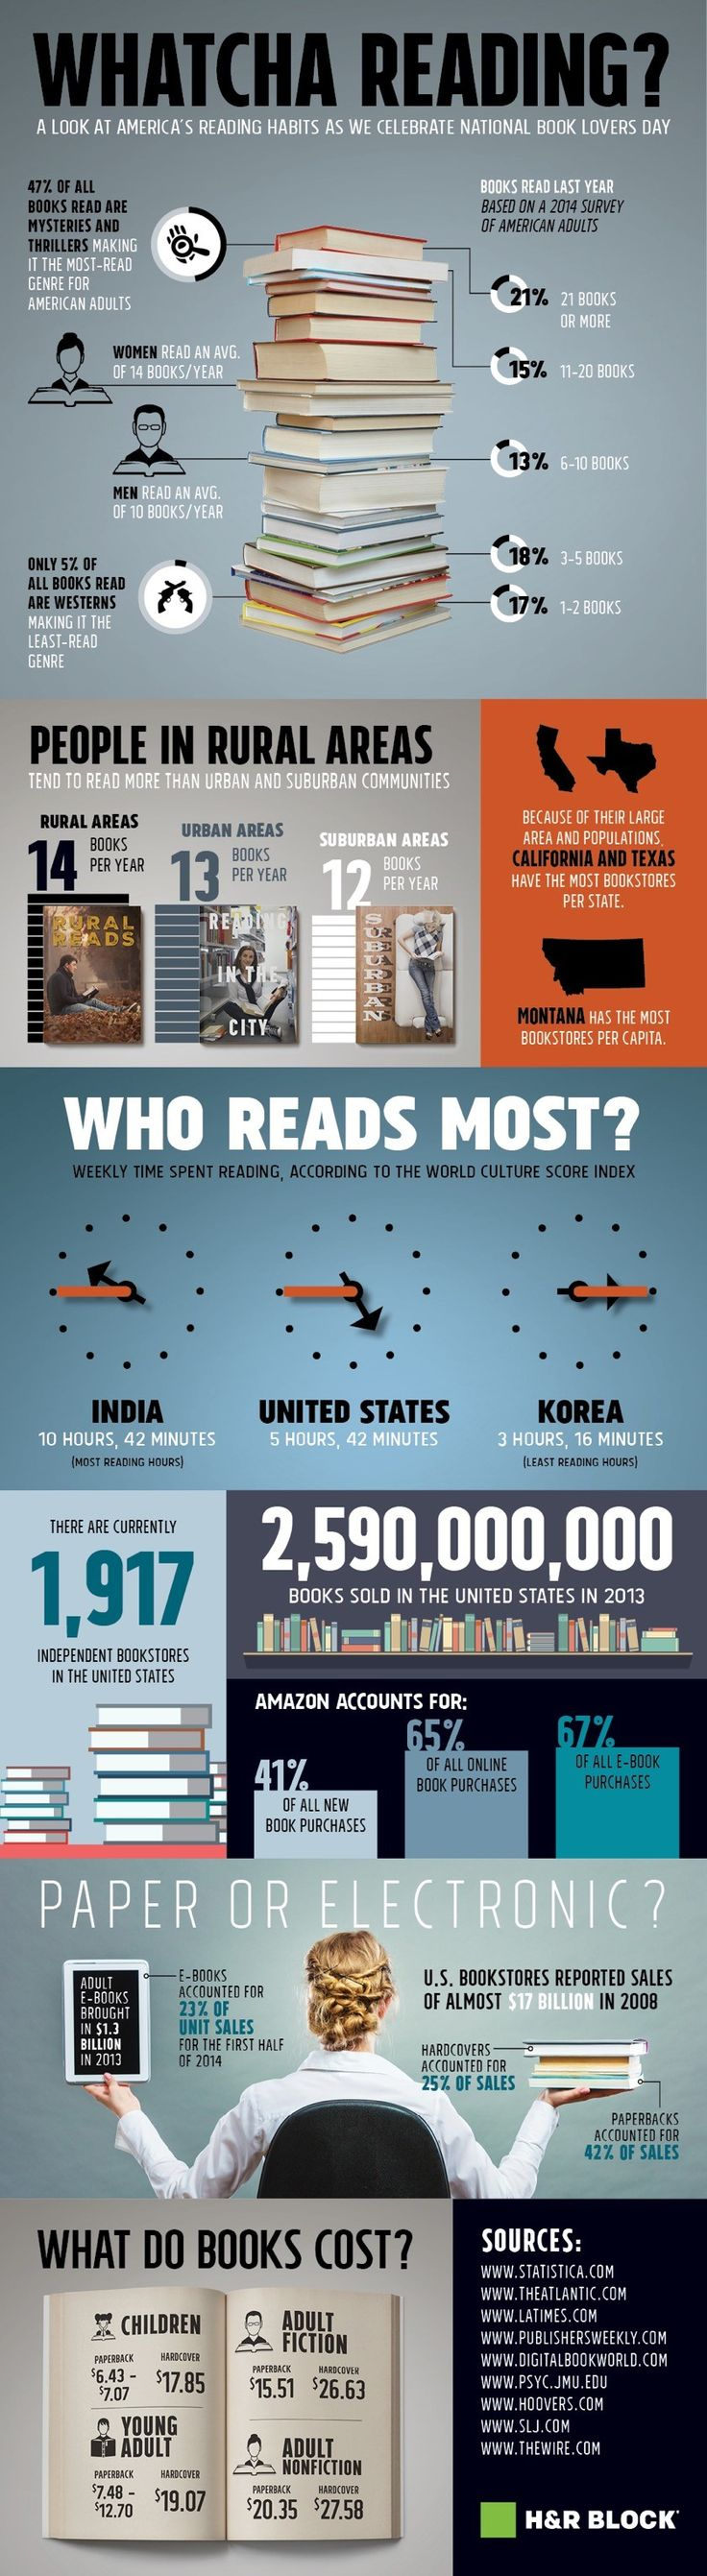 #Infographic: Reading and #book buying habits in the U.S.